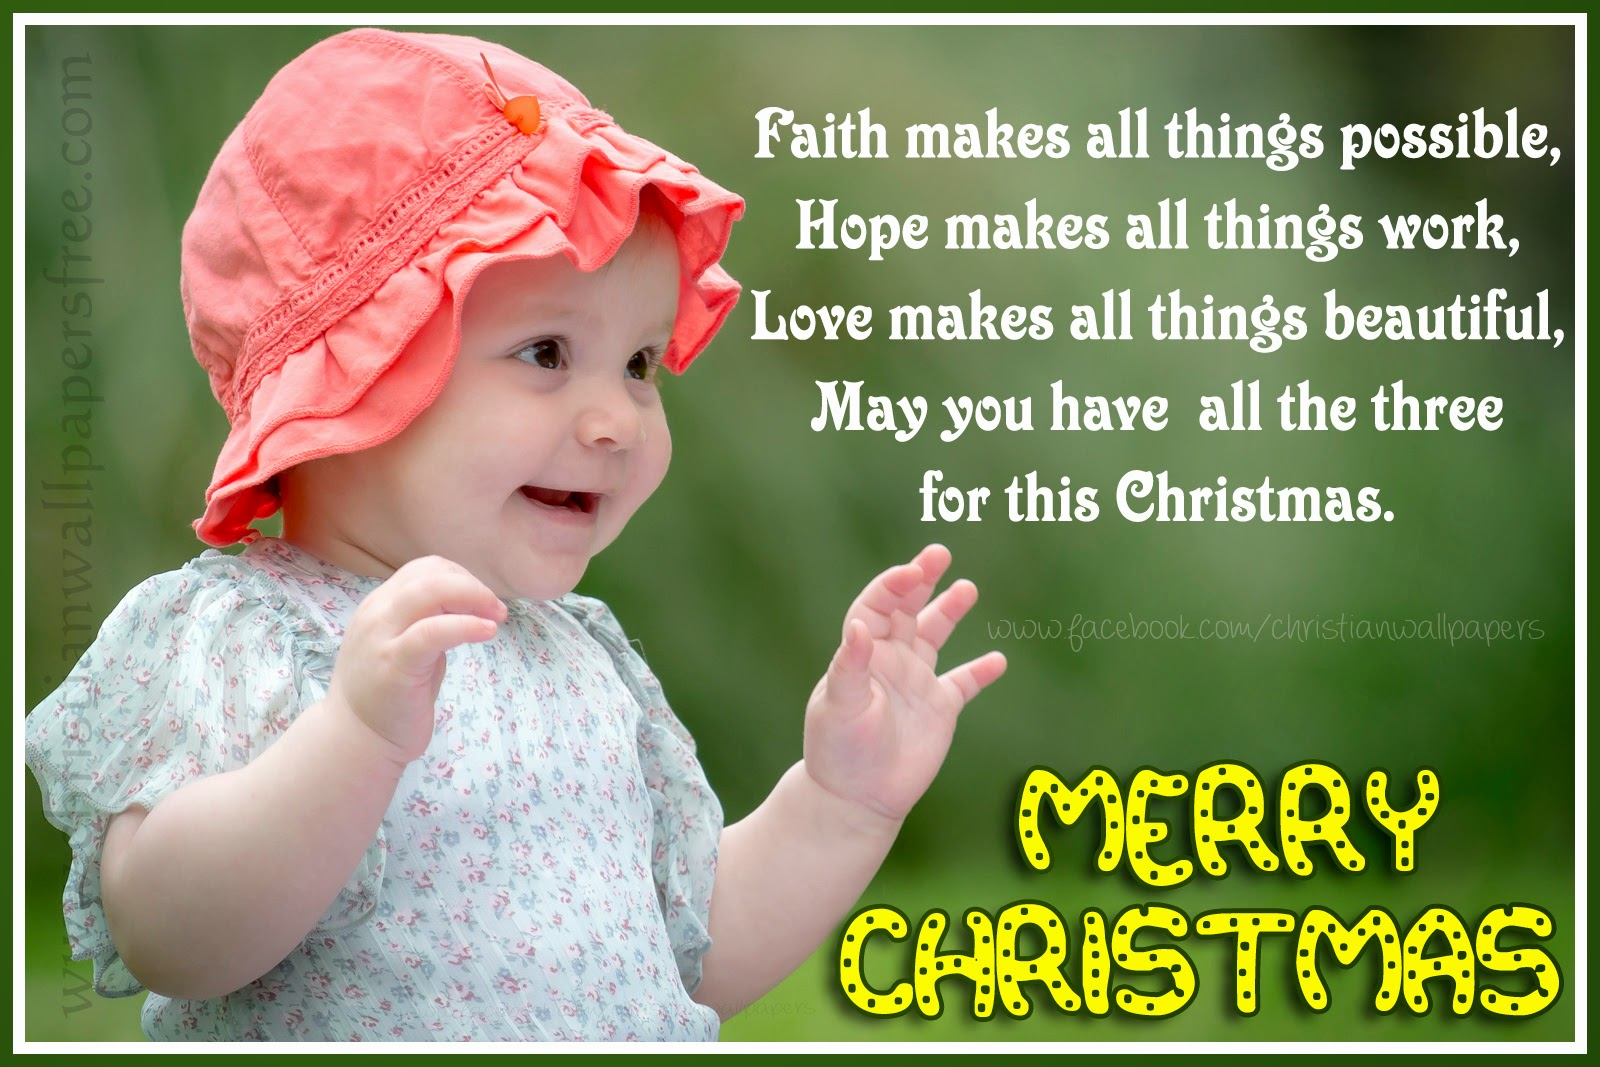 Download HD Christmas & New Year 2018 Bible Verse